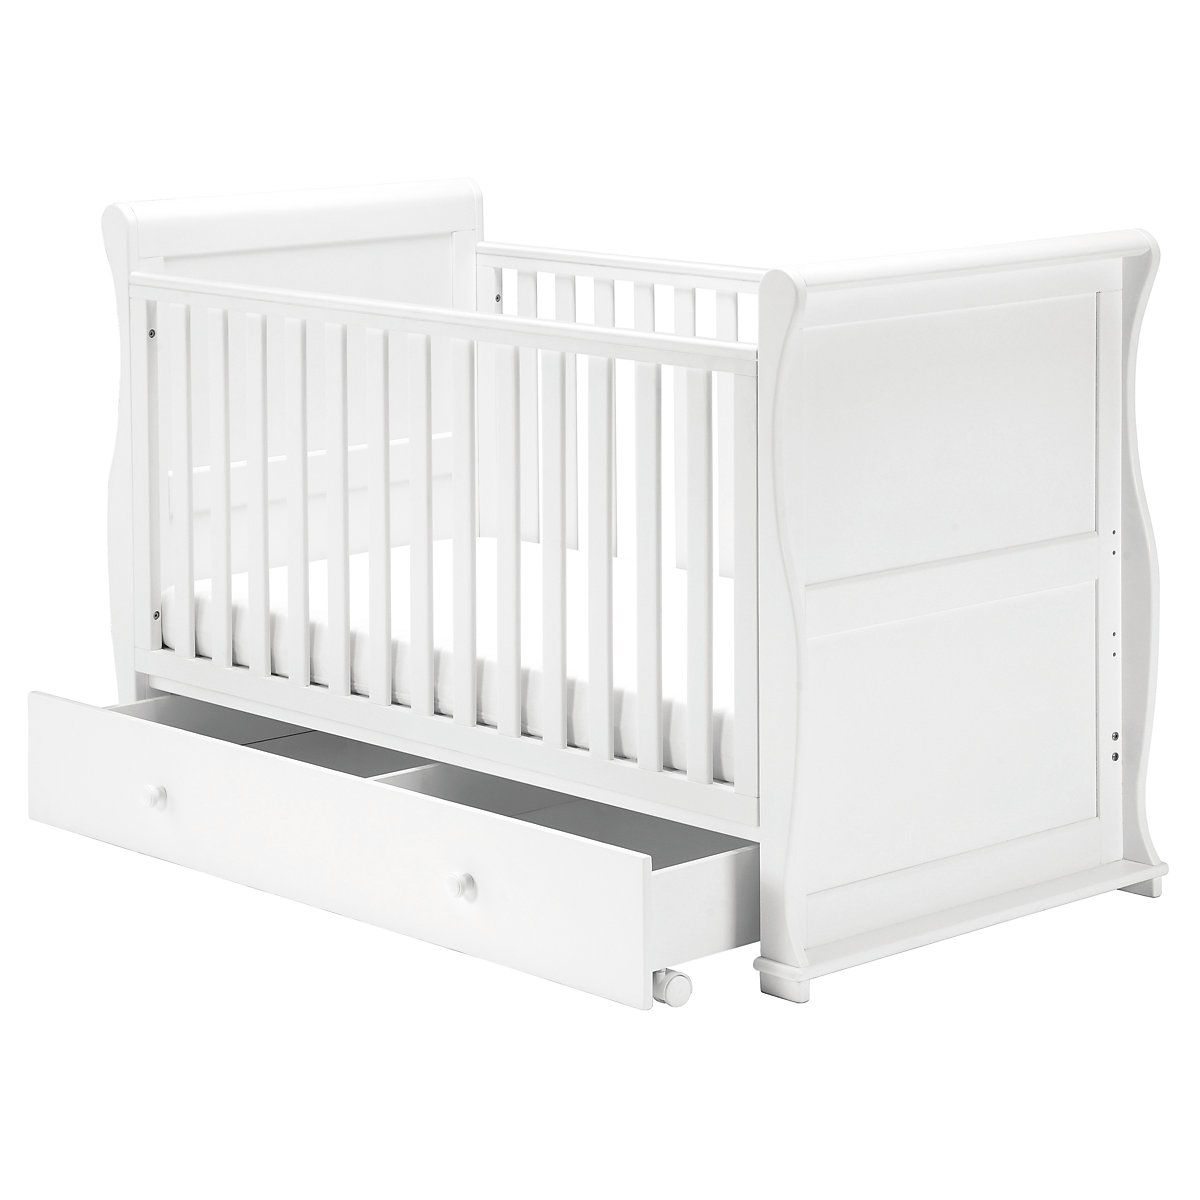 Mothercare Darlington Sleigh Cot Bed White Cot Bedding